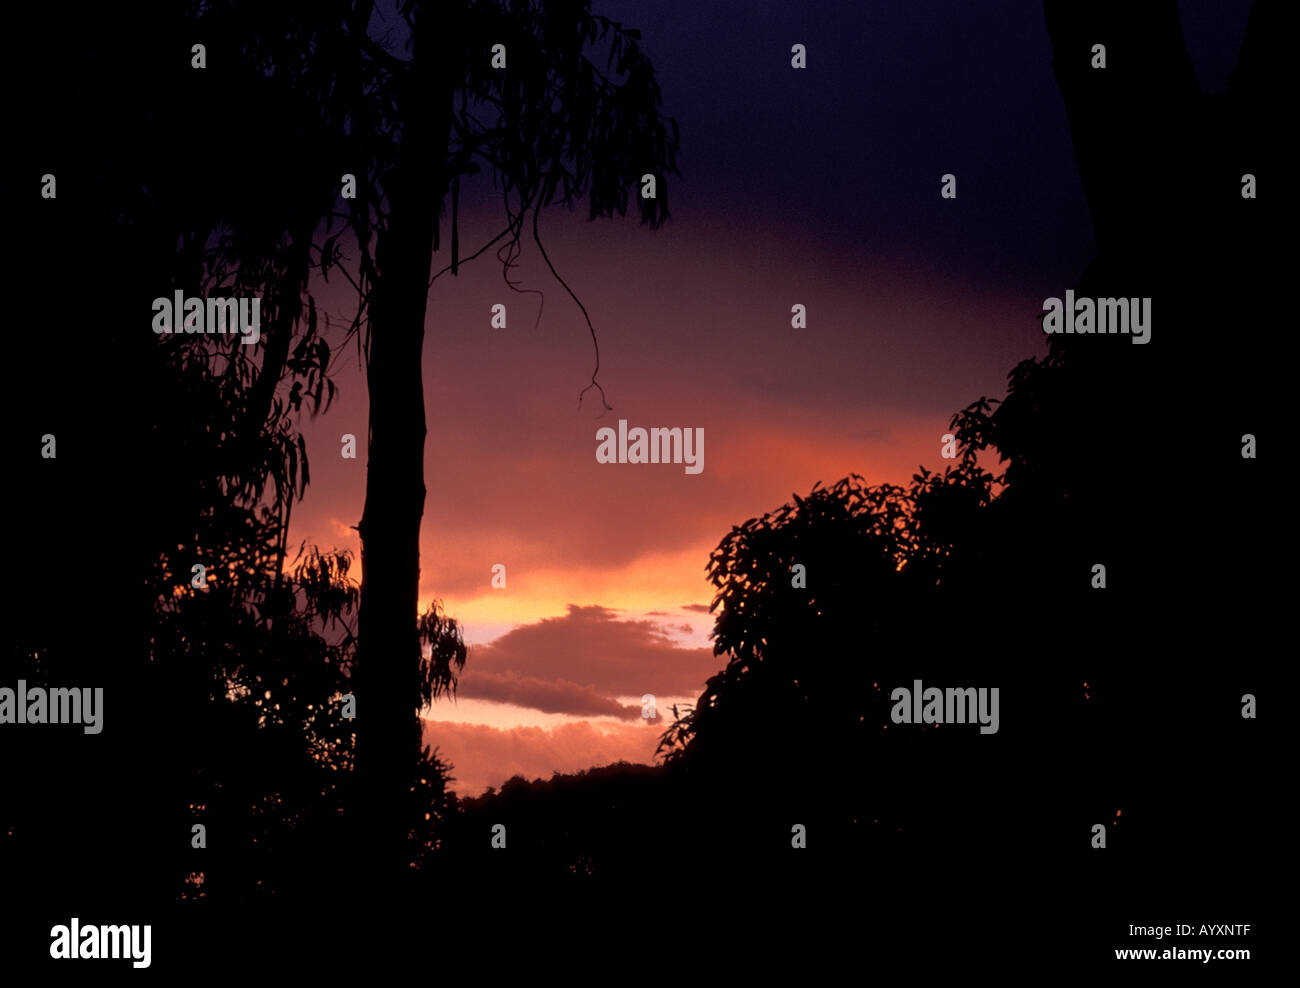 a9f5930715 Silhouetted trees against a fiery stormy orange sky in the Dandenong  National Park